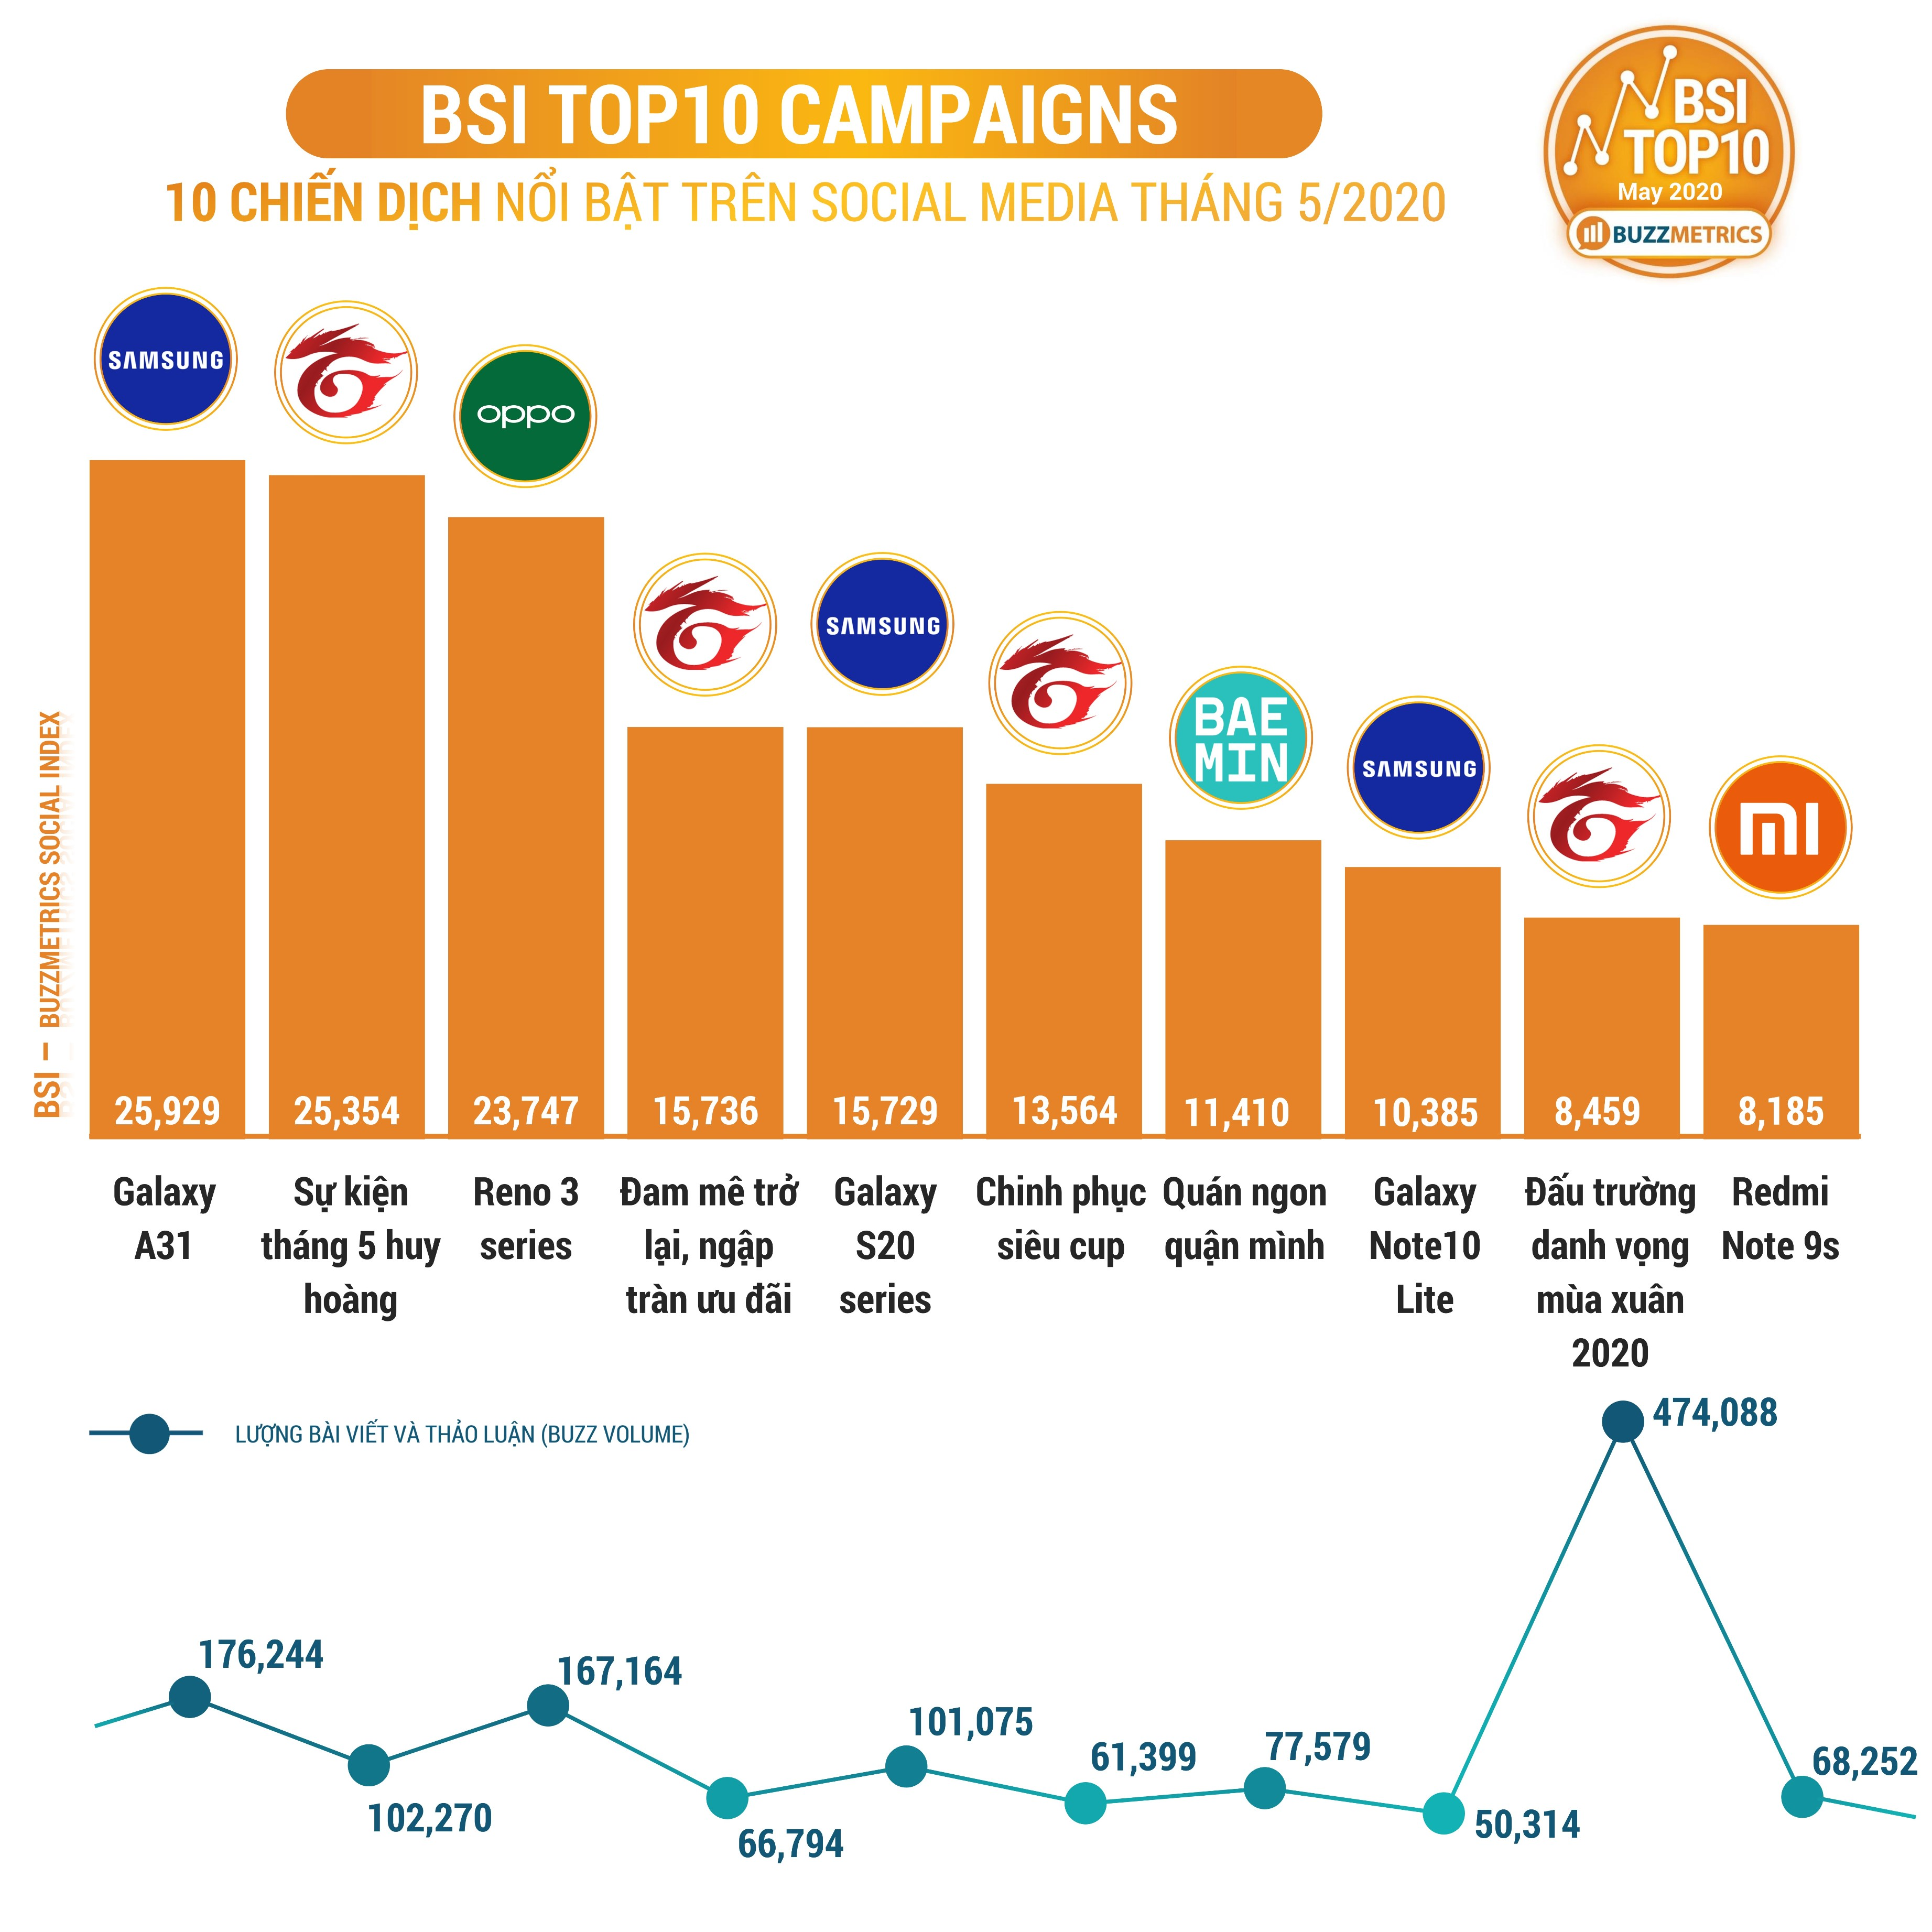 BSI Top10 MAY 2020 CAMPAIGNS chart